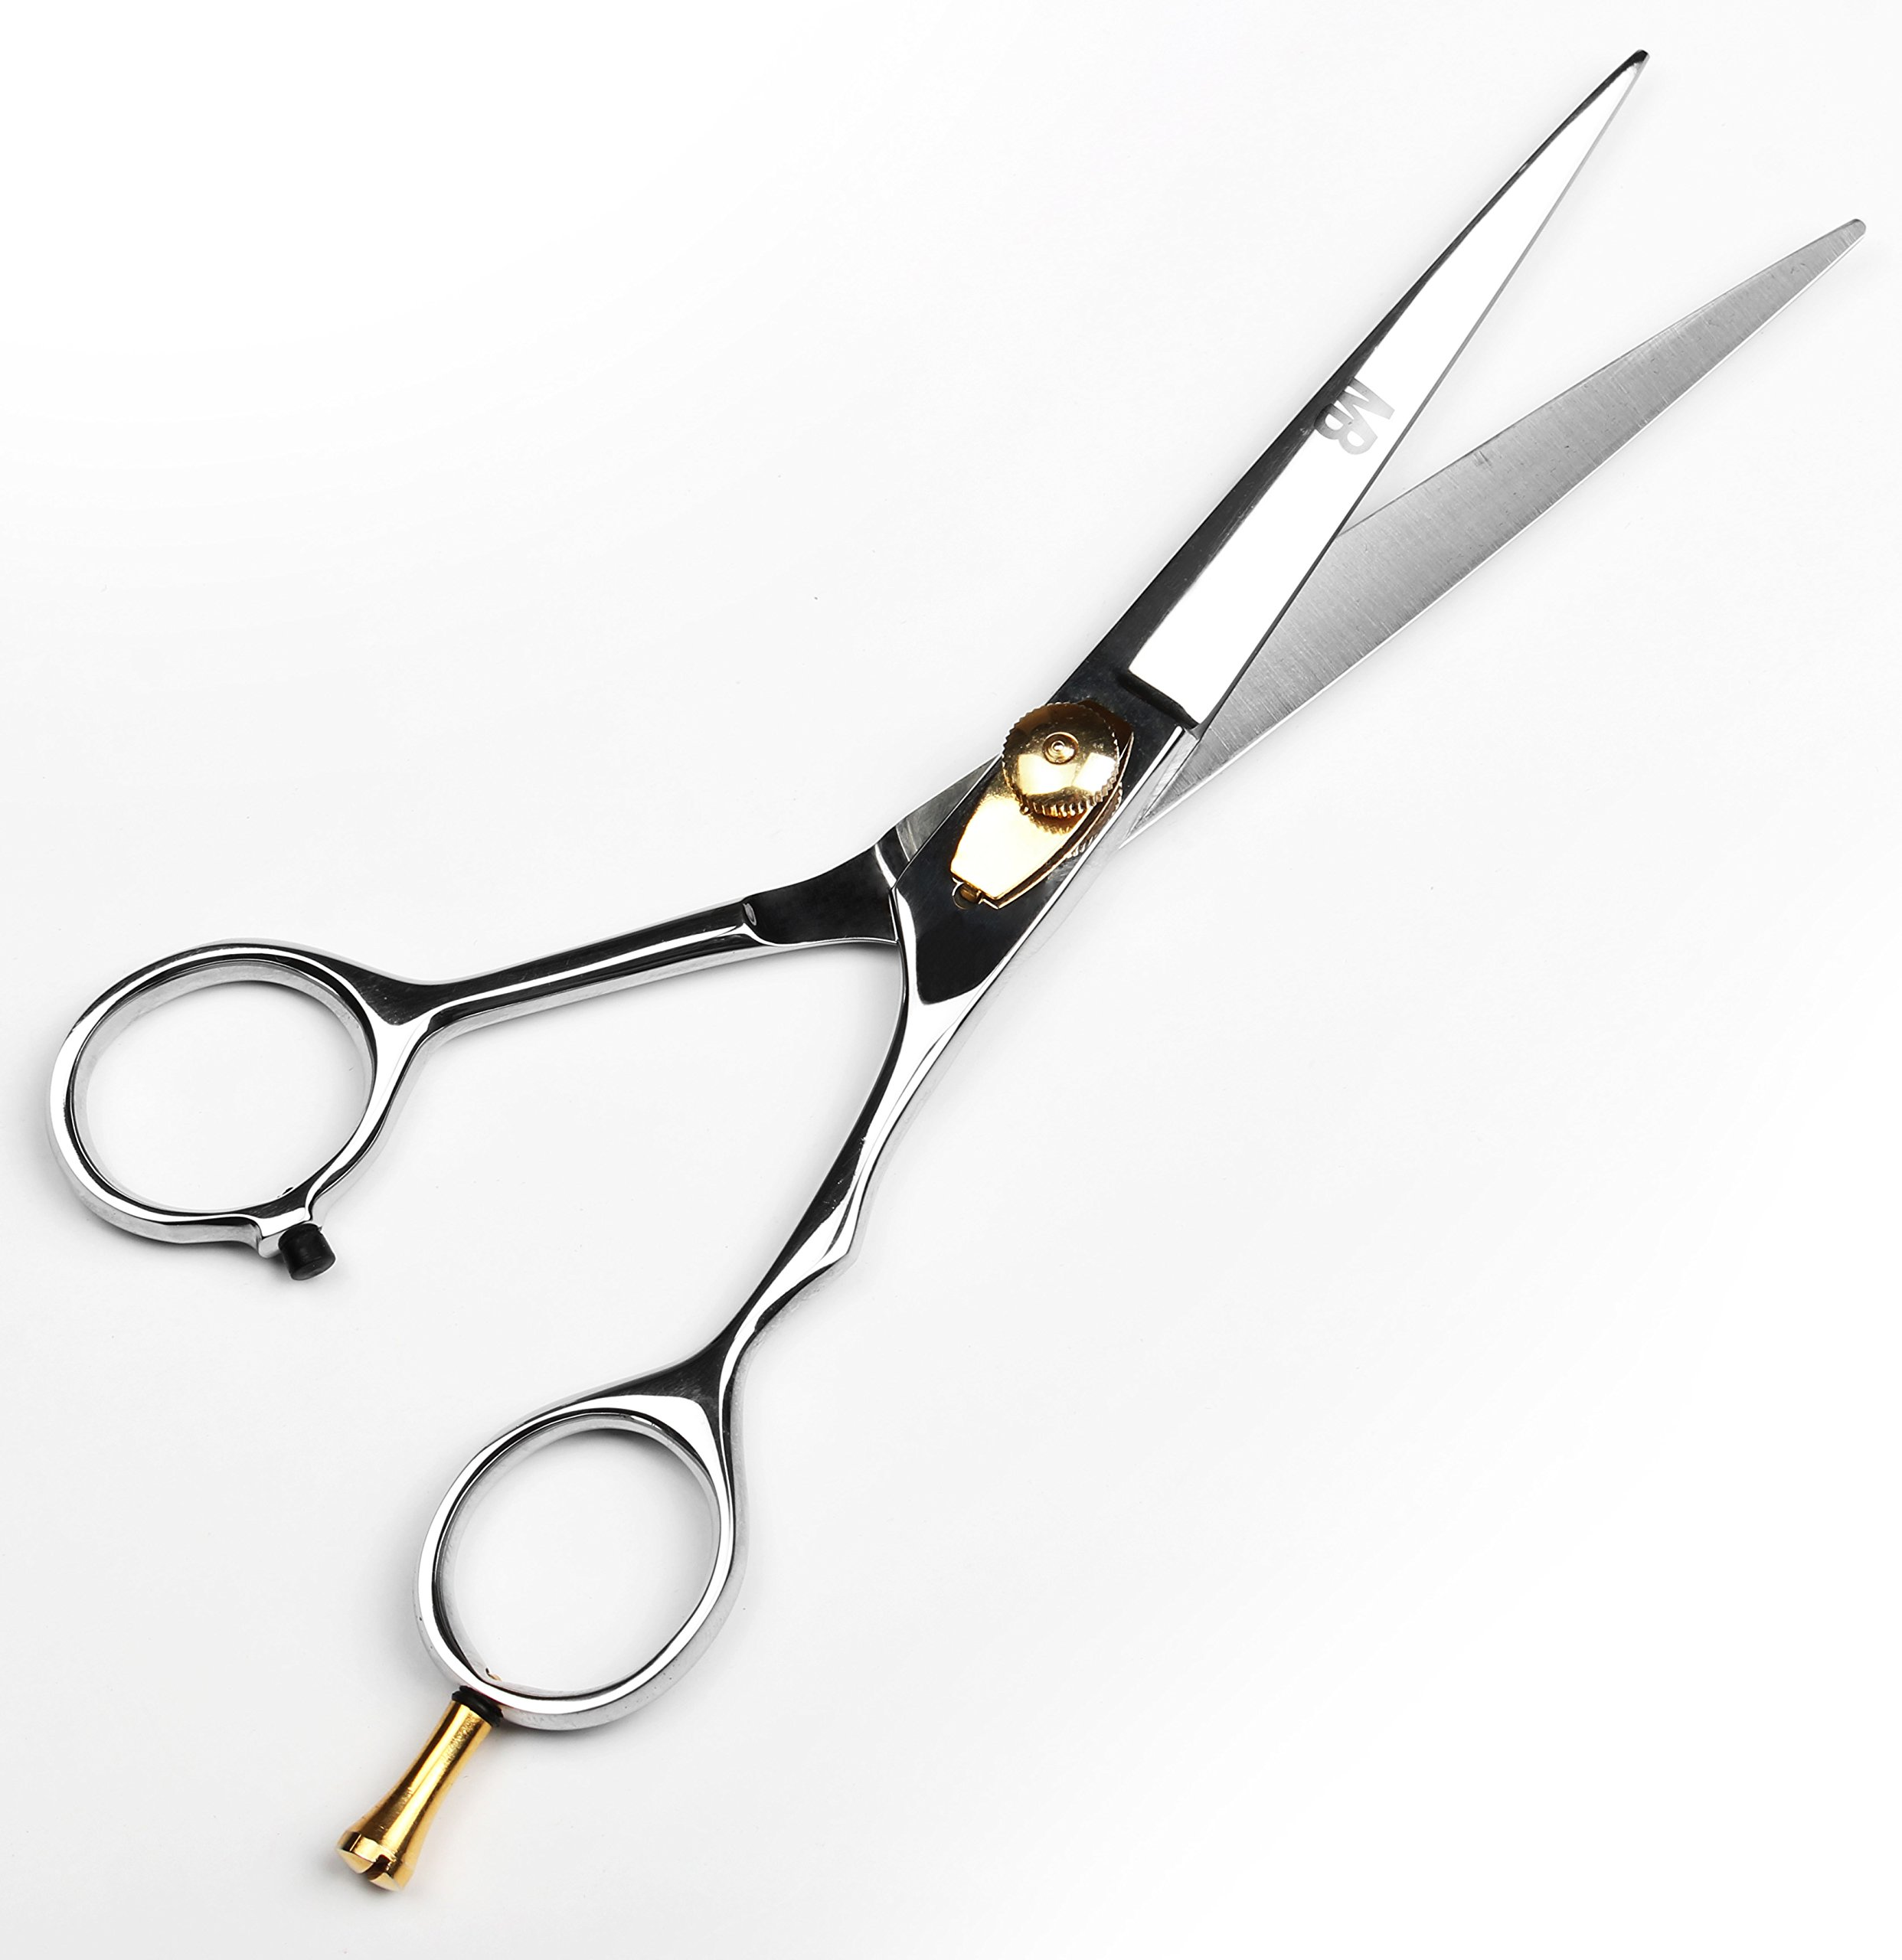 Professional Barber Scissor 6.5 Inch Razor Edge Blade Rust Free Stainless Steel Chrome Plated Shears For Smooth Cutting - Easy Grip Hairdressing Cosmetic Scissors by MB (Image #5)